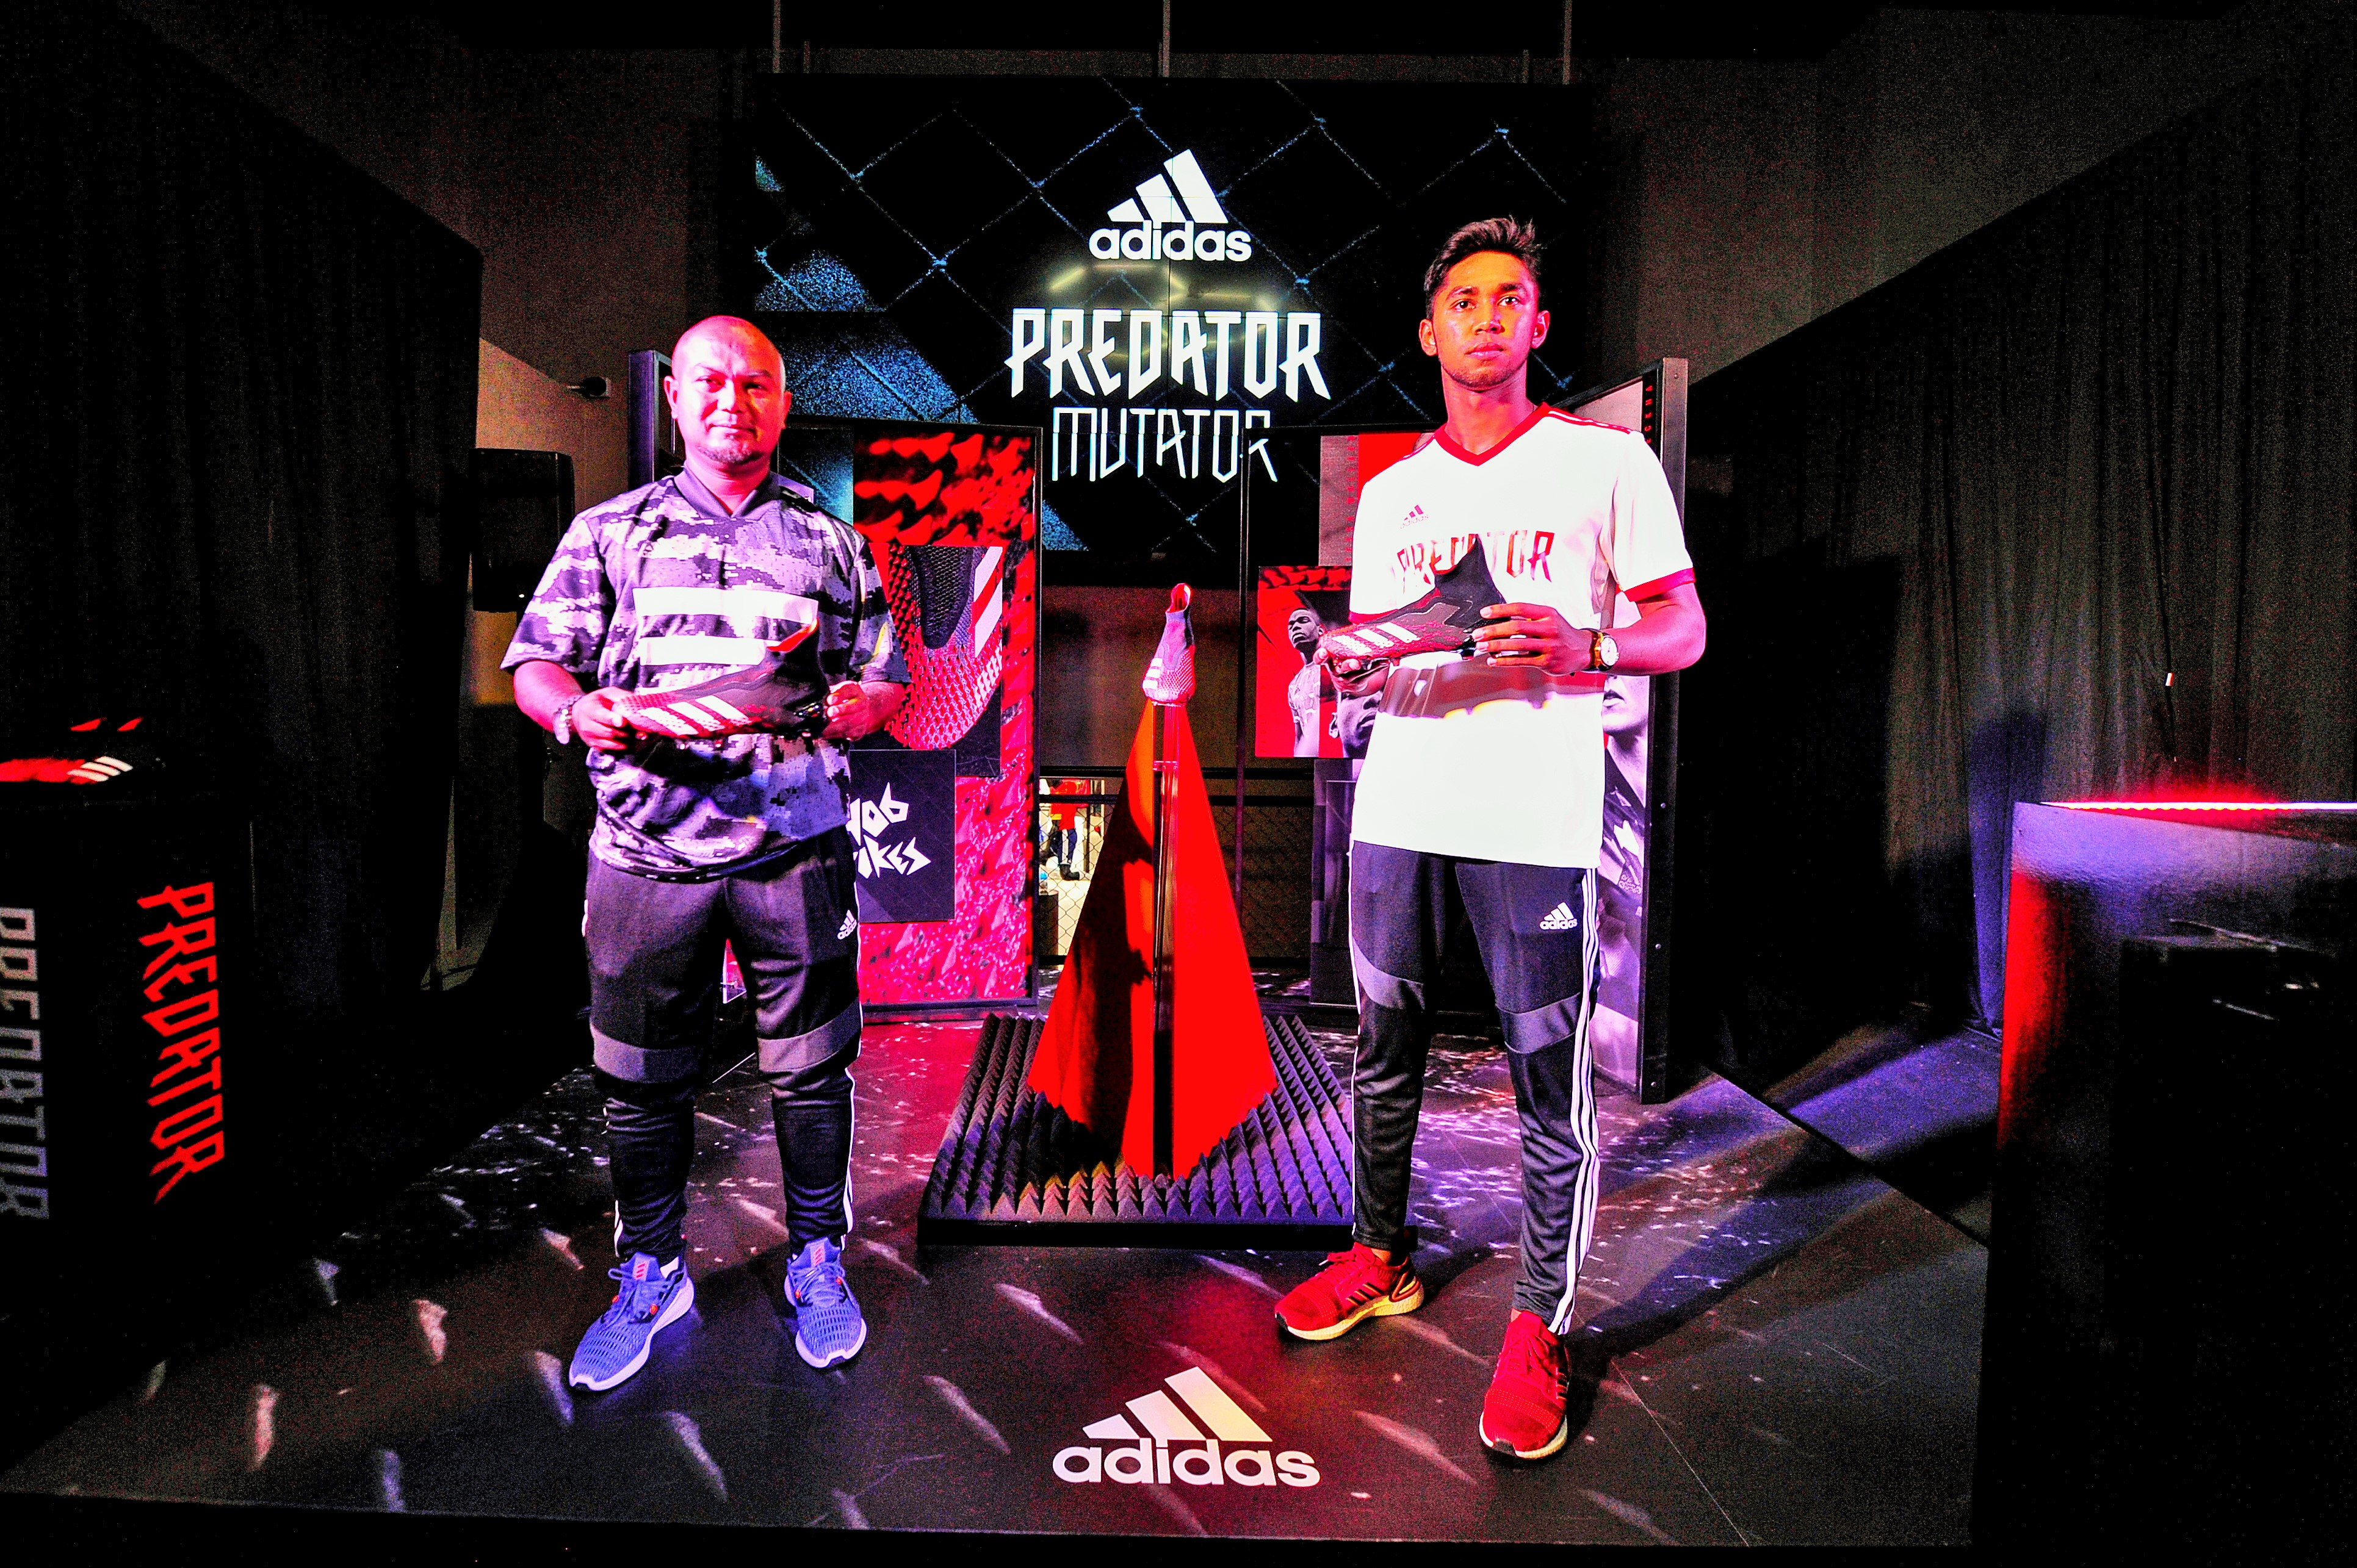 adidas PREDATOR 20 GL COMPETITION Just keepers.